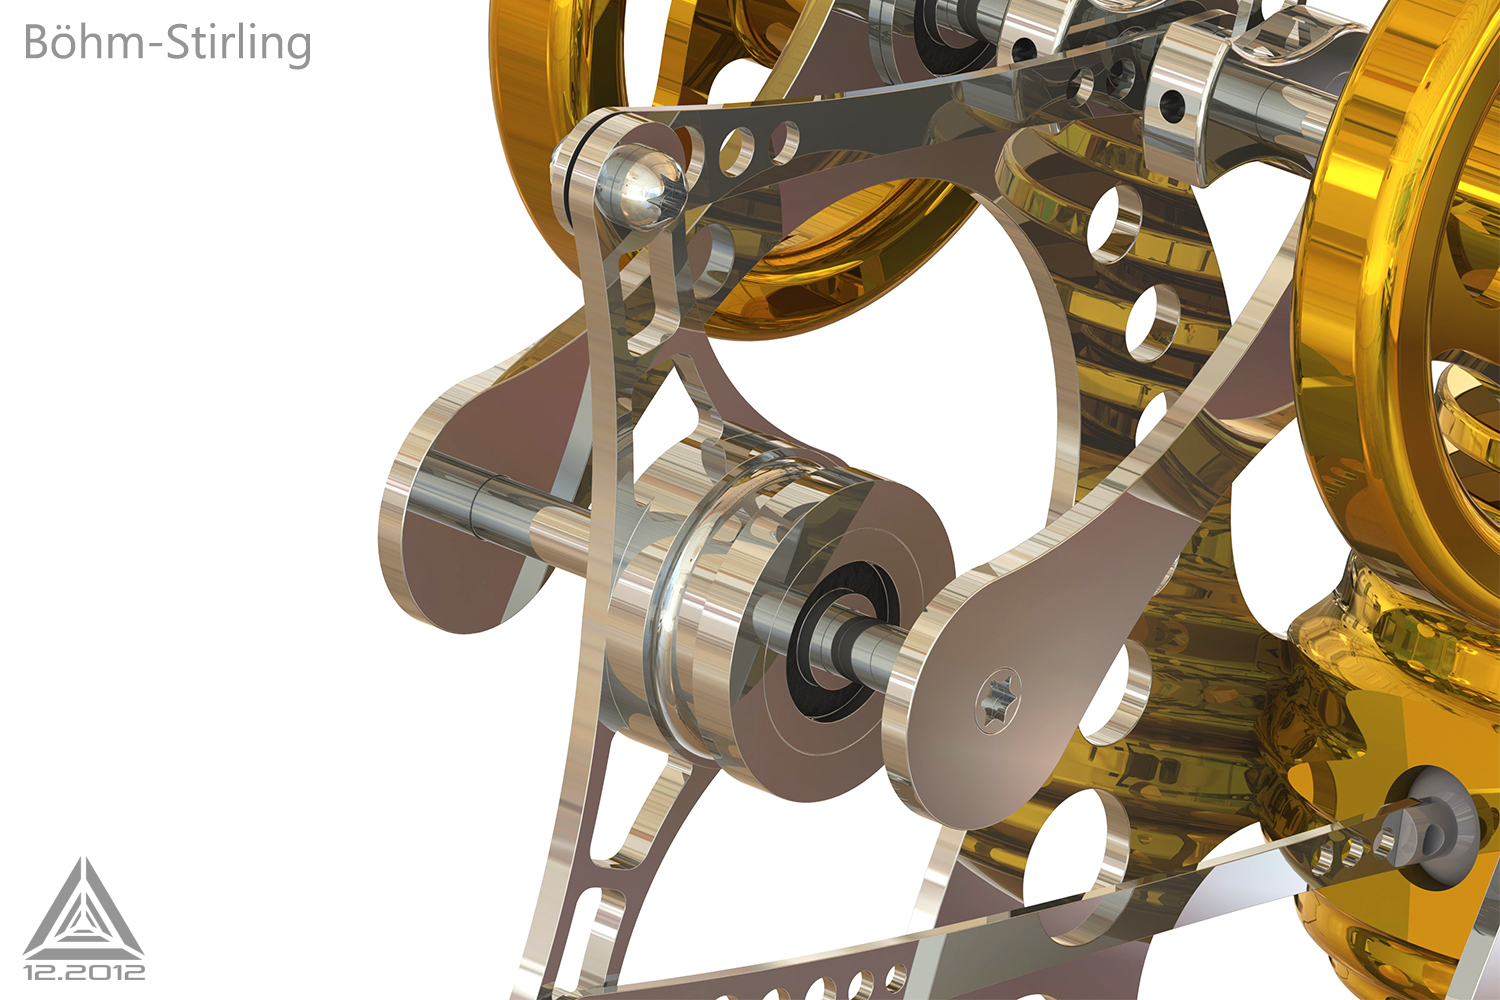 3d stirling engine 9 by icosaedri on deviantart for Decor 9 stirling